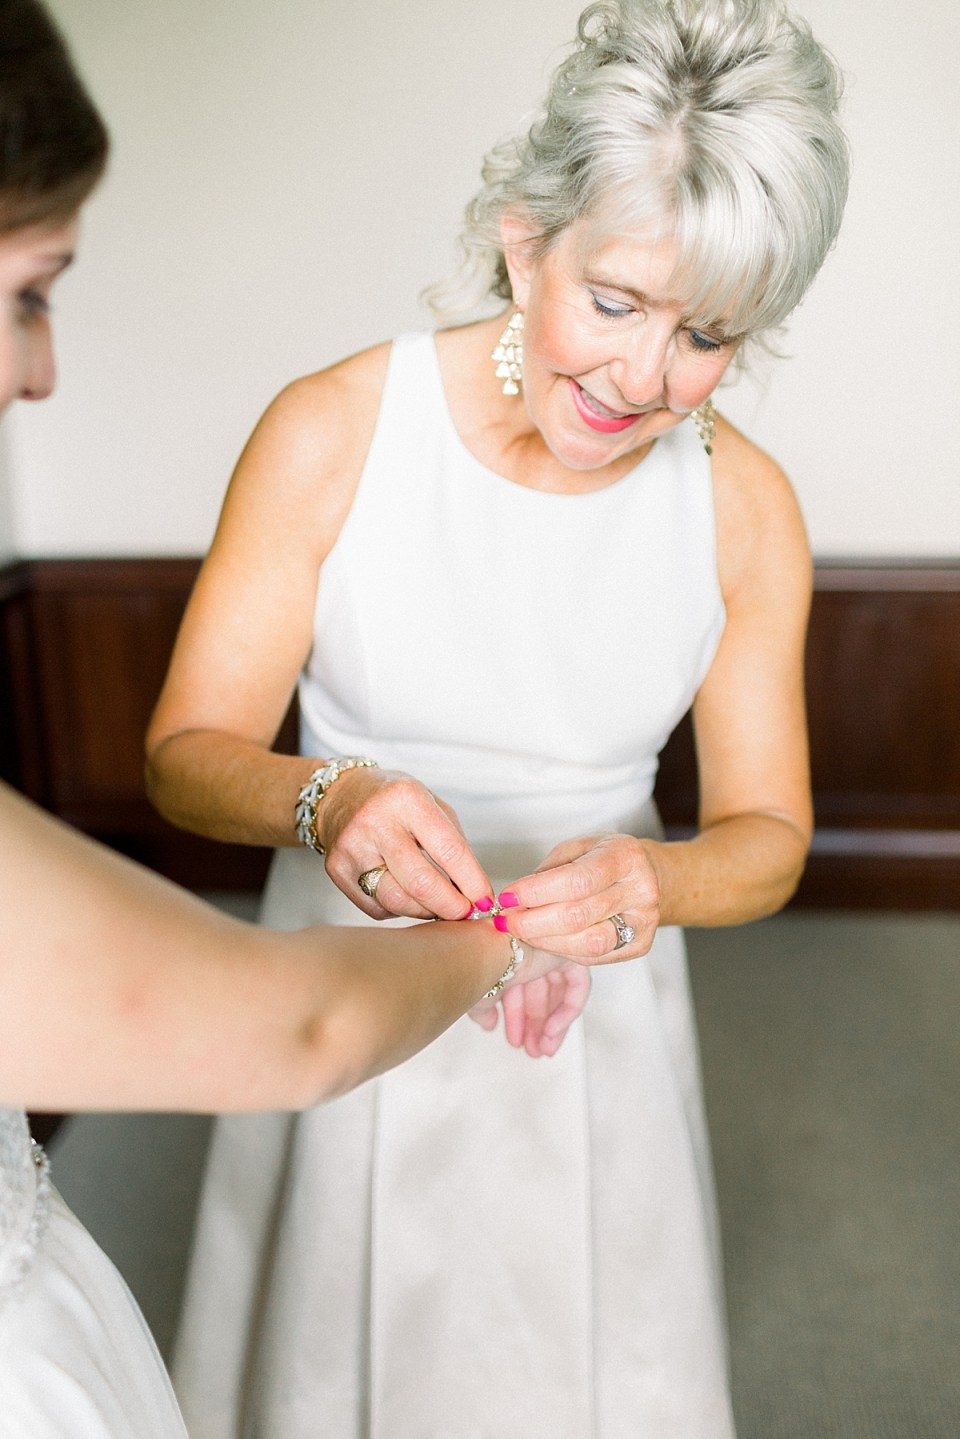 Arielle Peters Photography | Mother of the bride helping the bride get ready at The Bridgewater Club in Carmel, Indiana on wedding day.